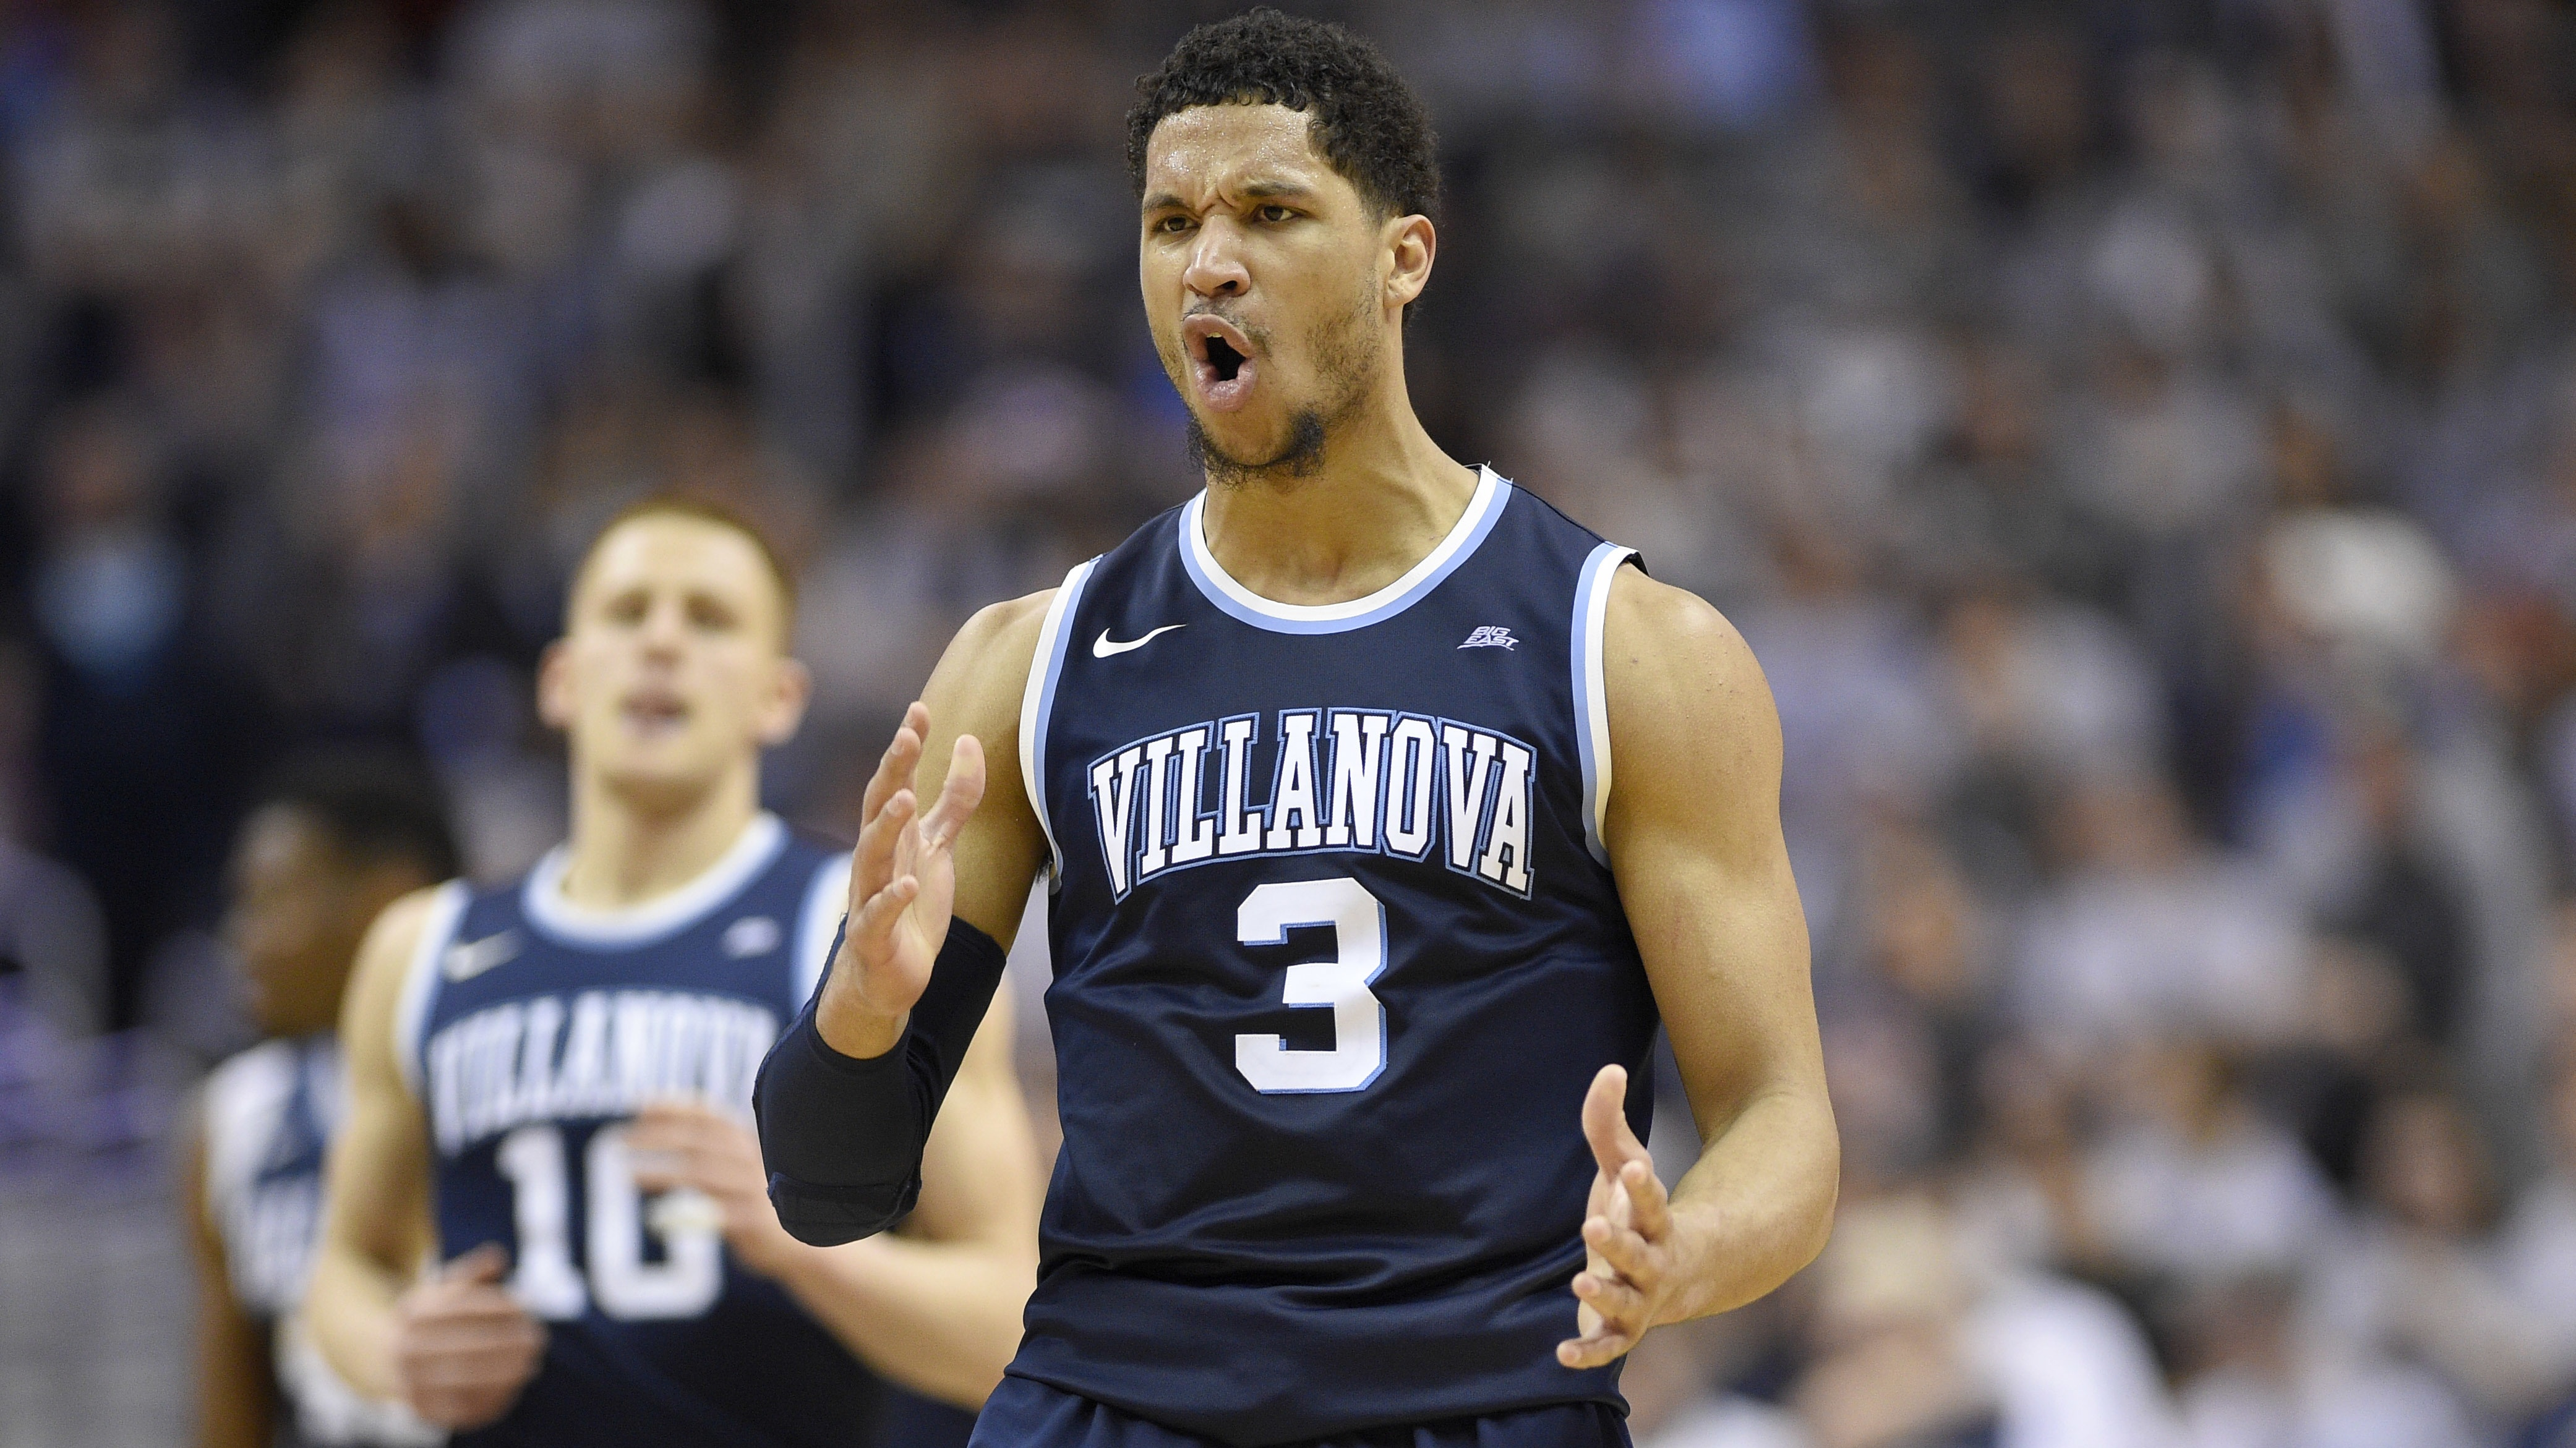 Villanova guard Josh Hart (3) reacts after he hit a 3-pointer during the second half of an NCAA college basketball game against the Georgetown, Saturday, March 4, 2017, in Washington. Villanova won 81-55. (AP Photo/Nick Wass)